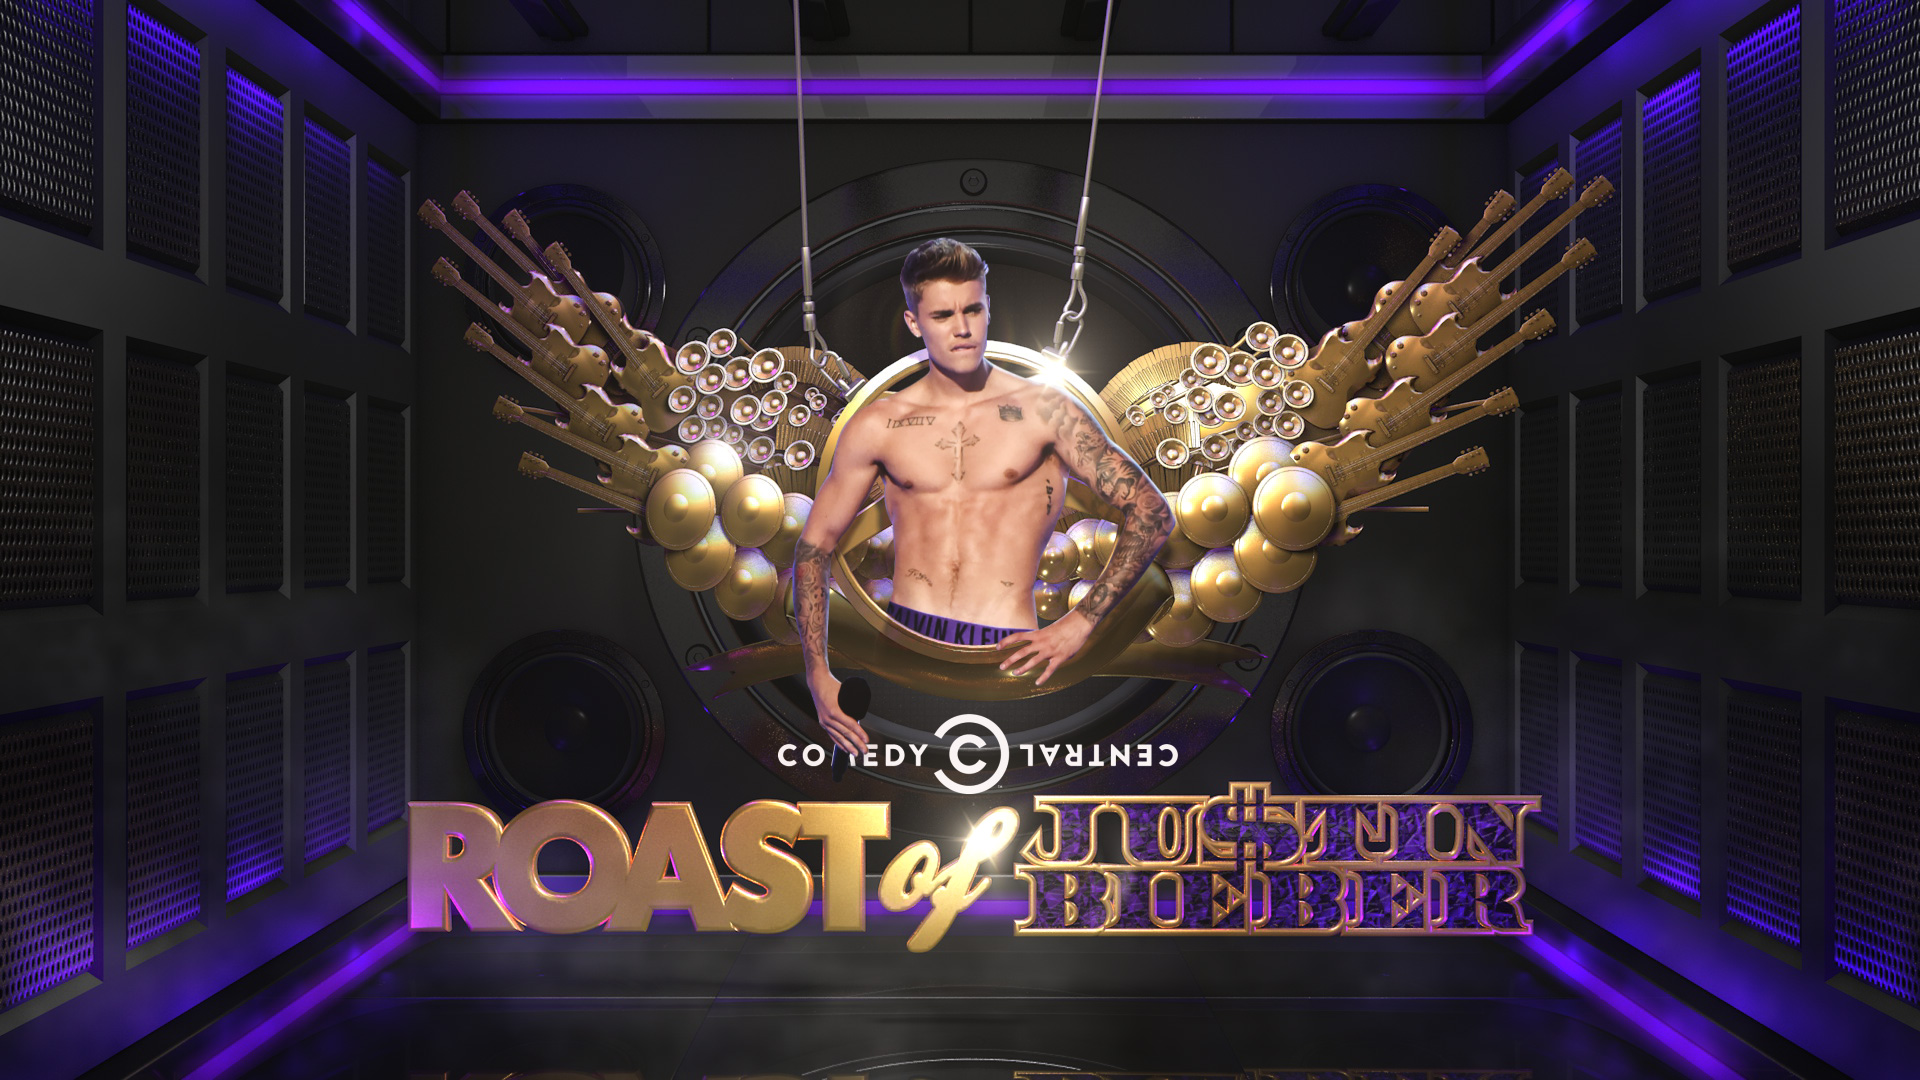 Comedy Central Roast Of Bieber - Poster , HD Wallpaper & Backgrounds